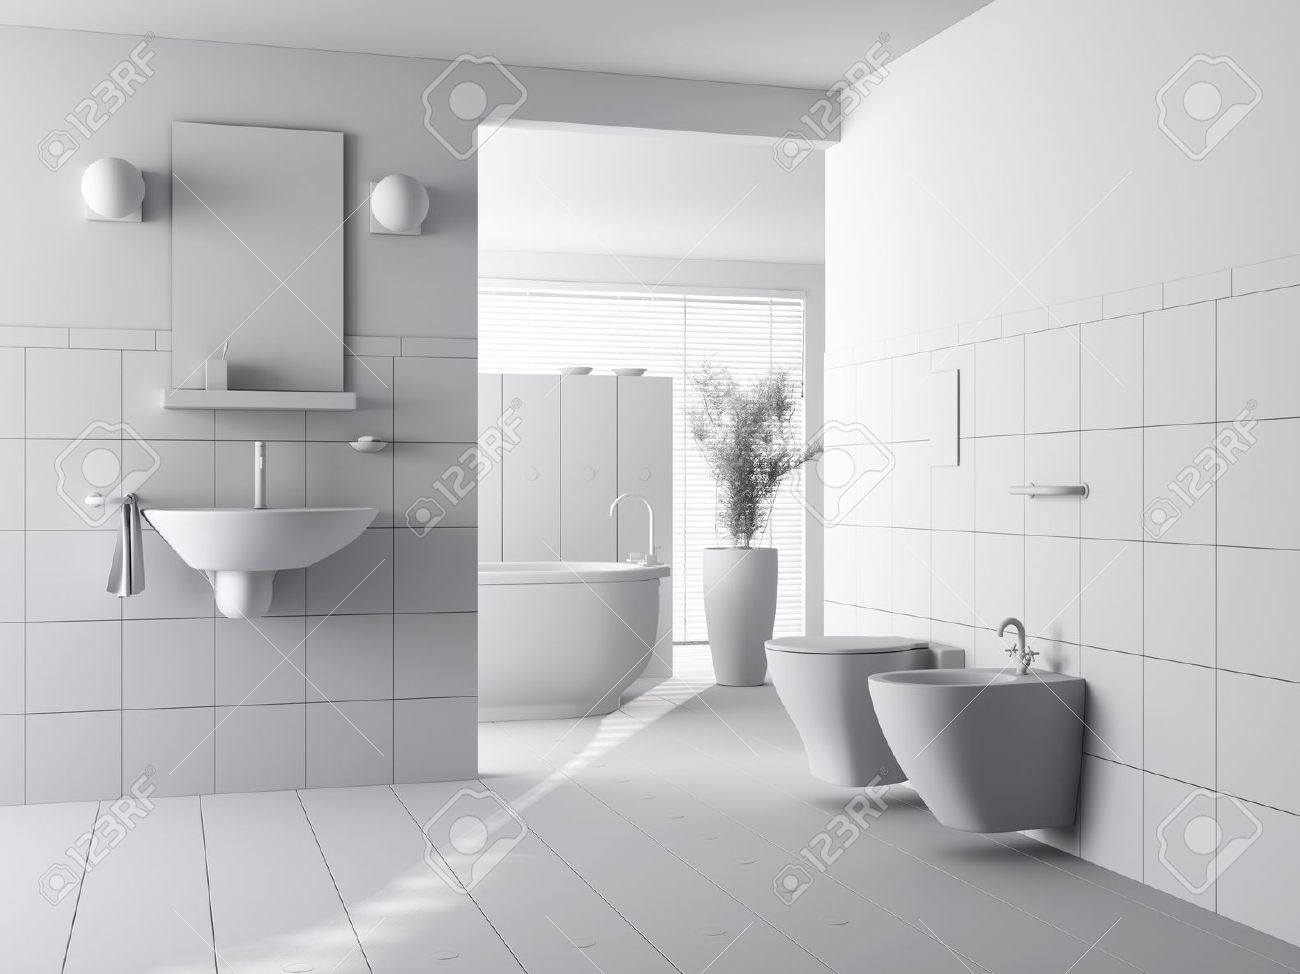 3d Clay Render Of A Modern Bathroom Interior Design Stock Photo ...